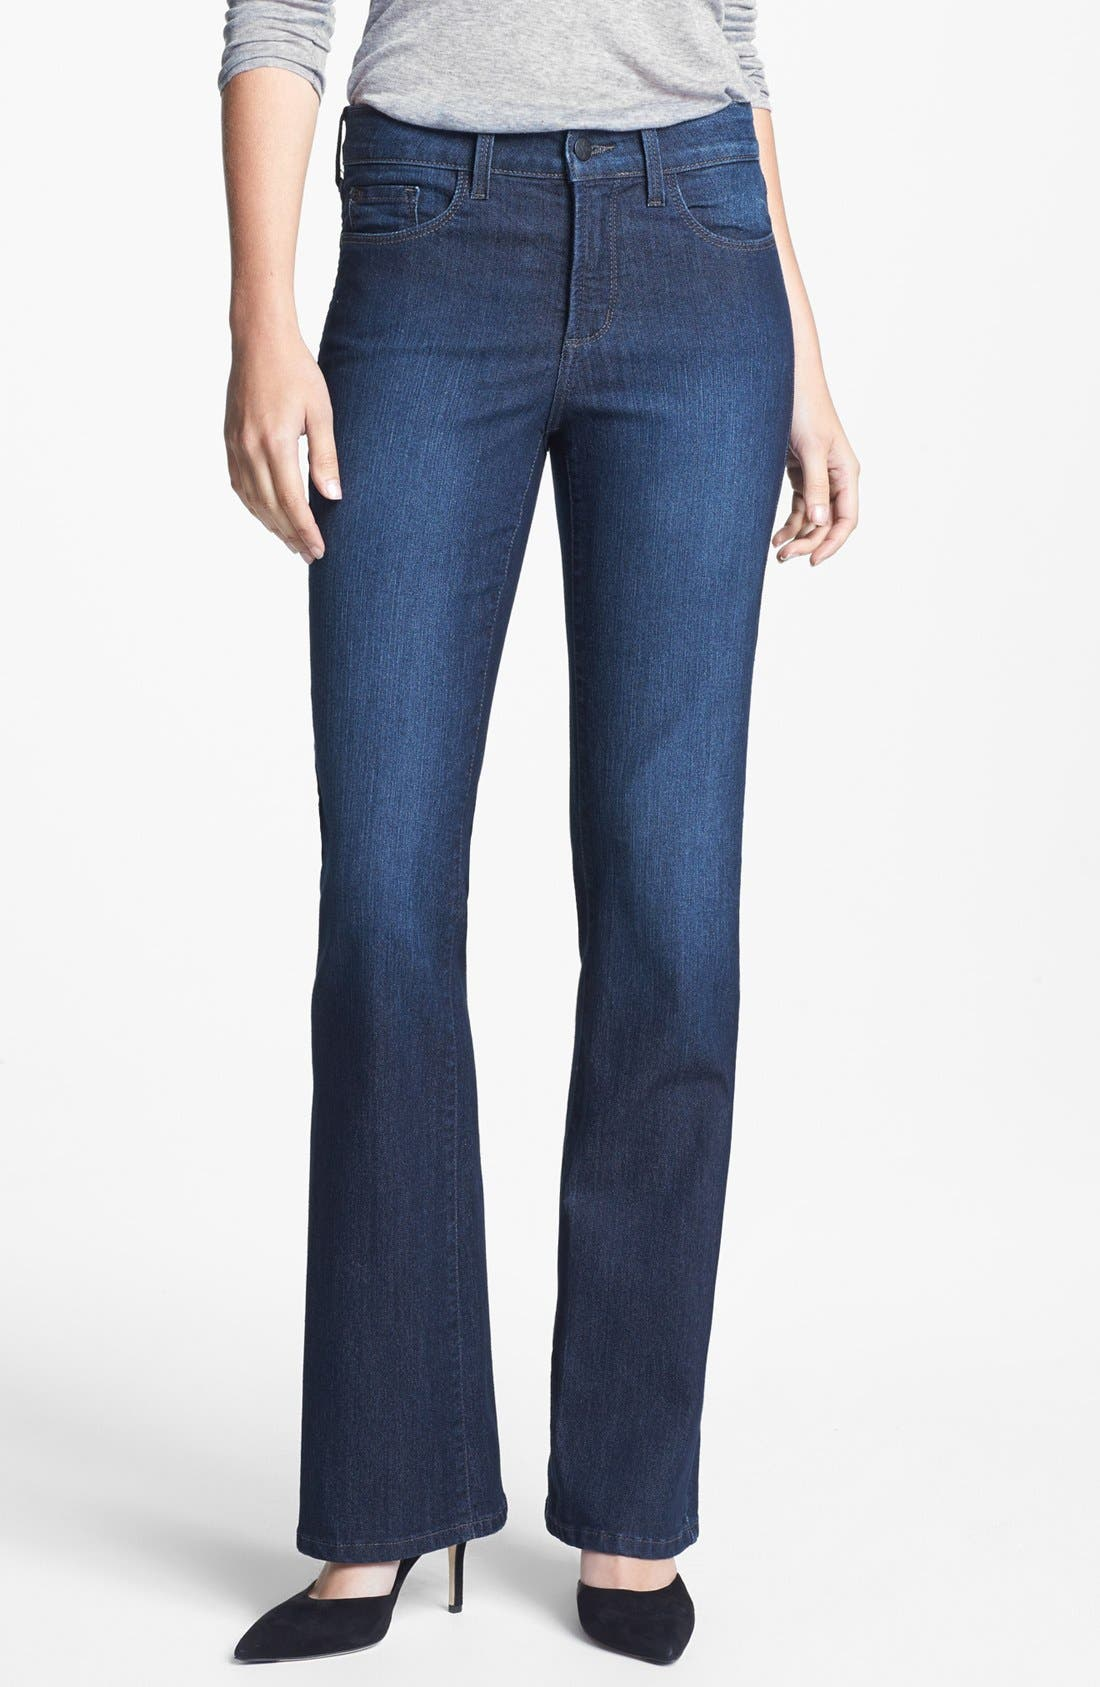 Main Image - NYDJ 'Barbara' Stretch Bootcut Jeans (Burbank)